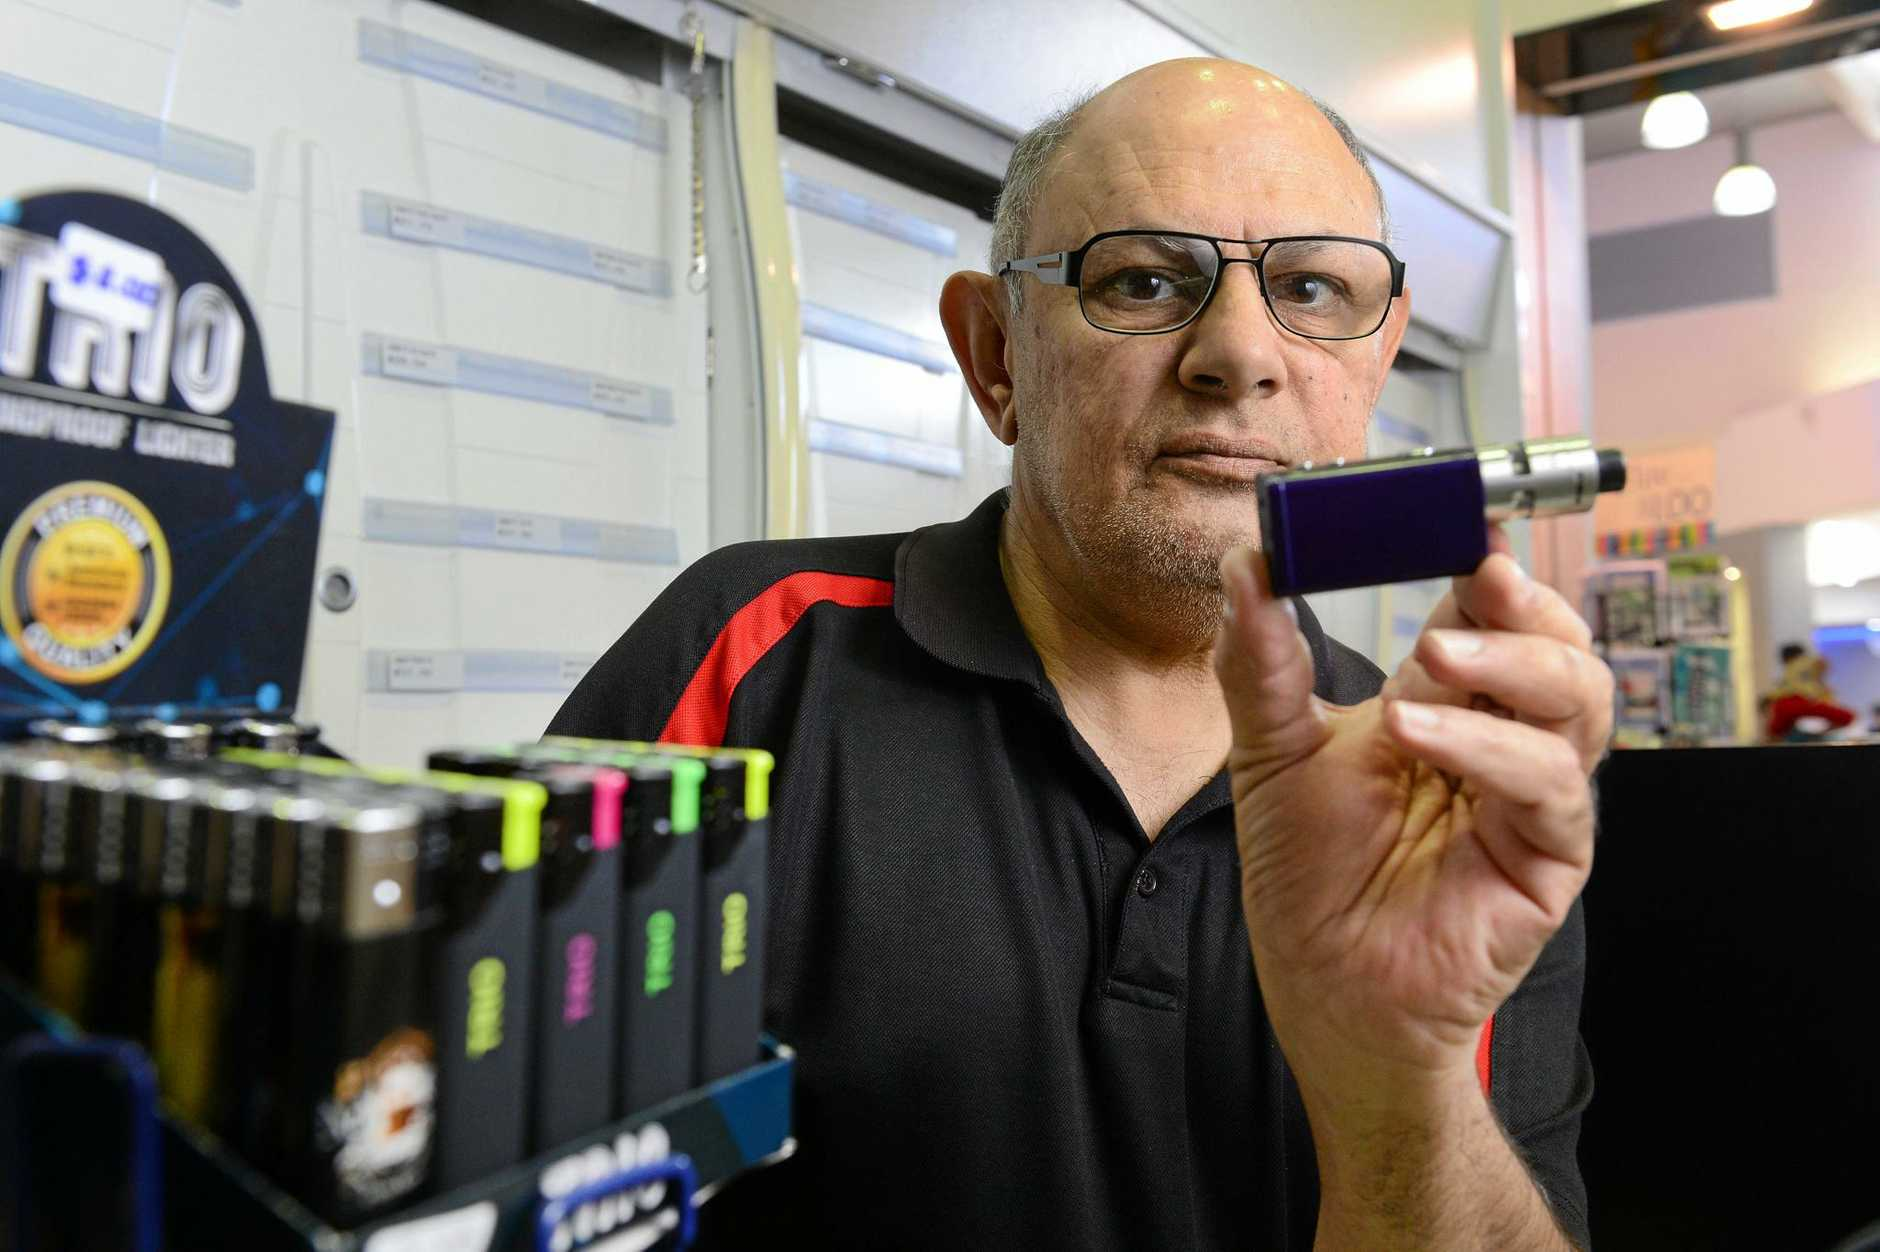 Tobacconist calls for nicotine e-cigarettes to be legal